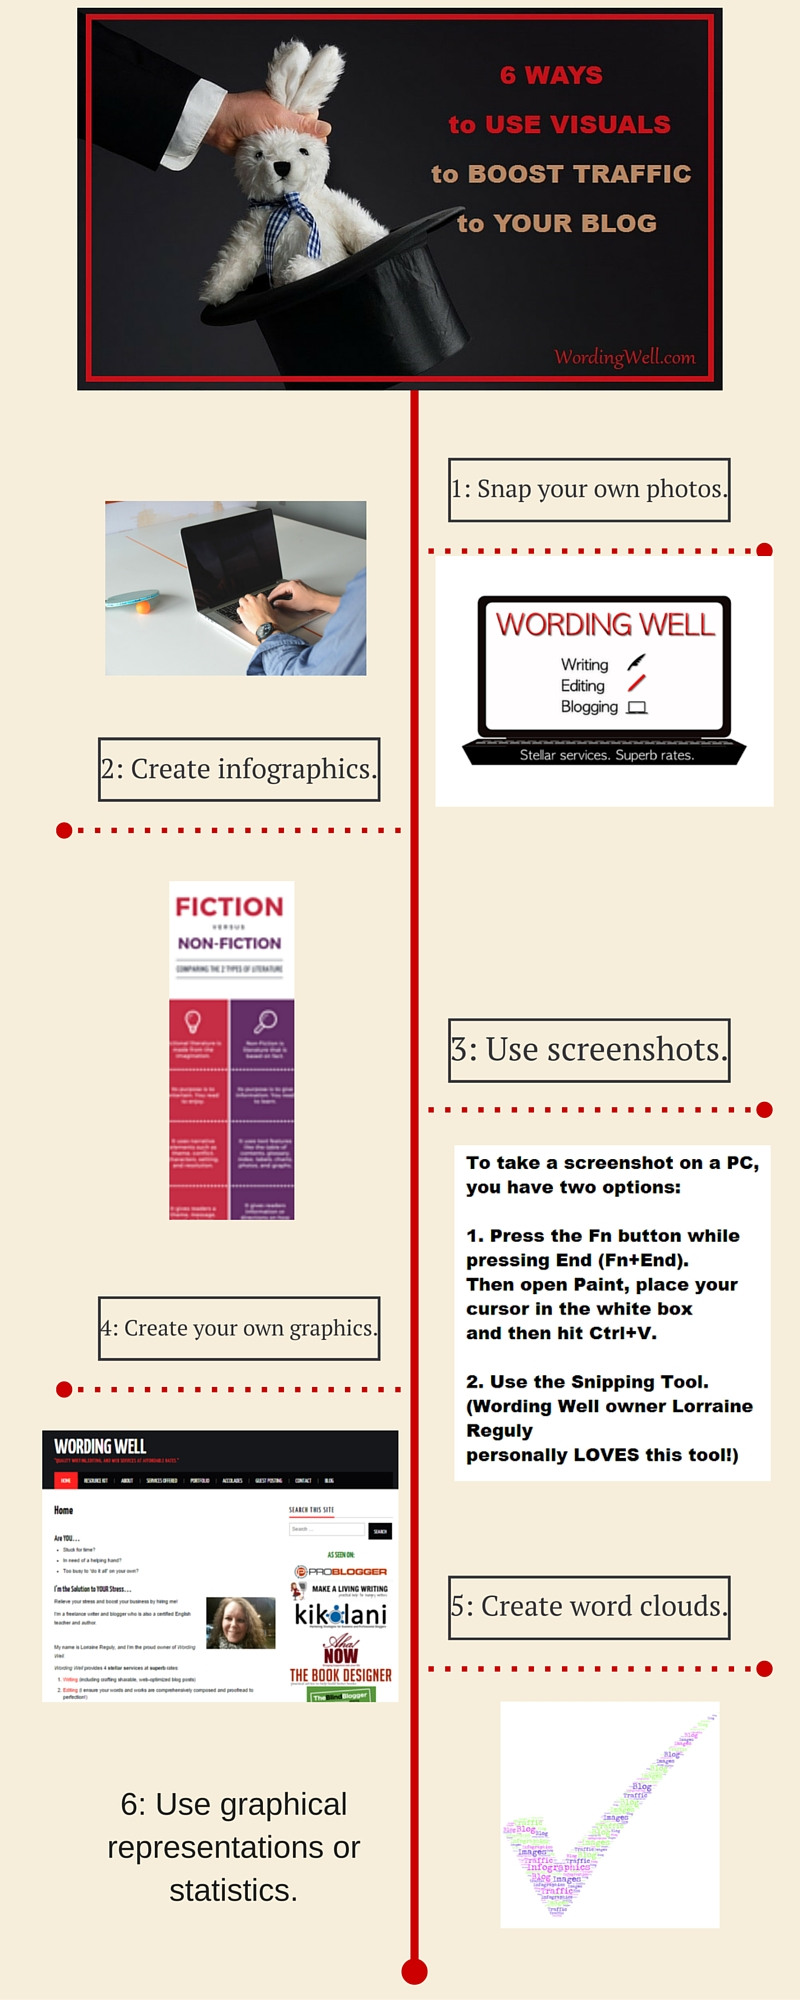 6 Ways to Use Visuals to Boost Traffic on Your Blog Infographic